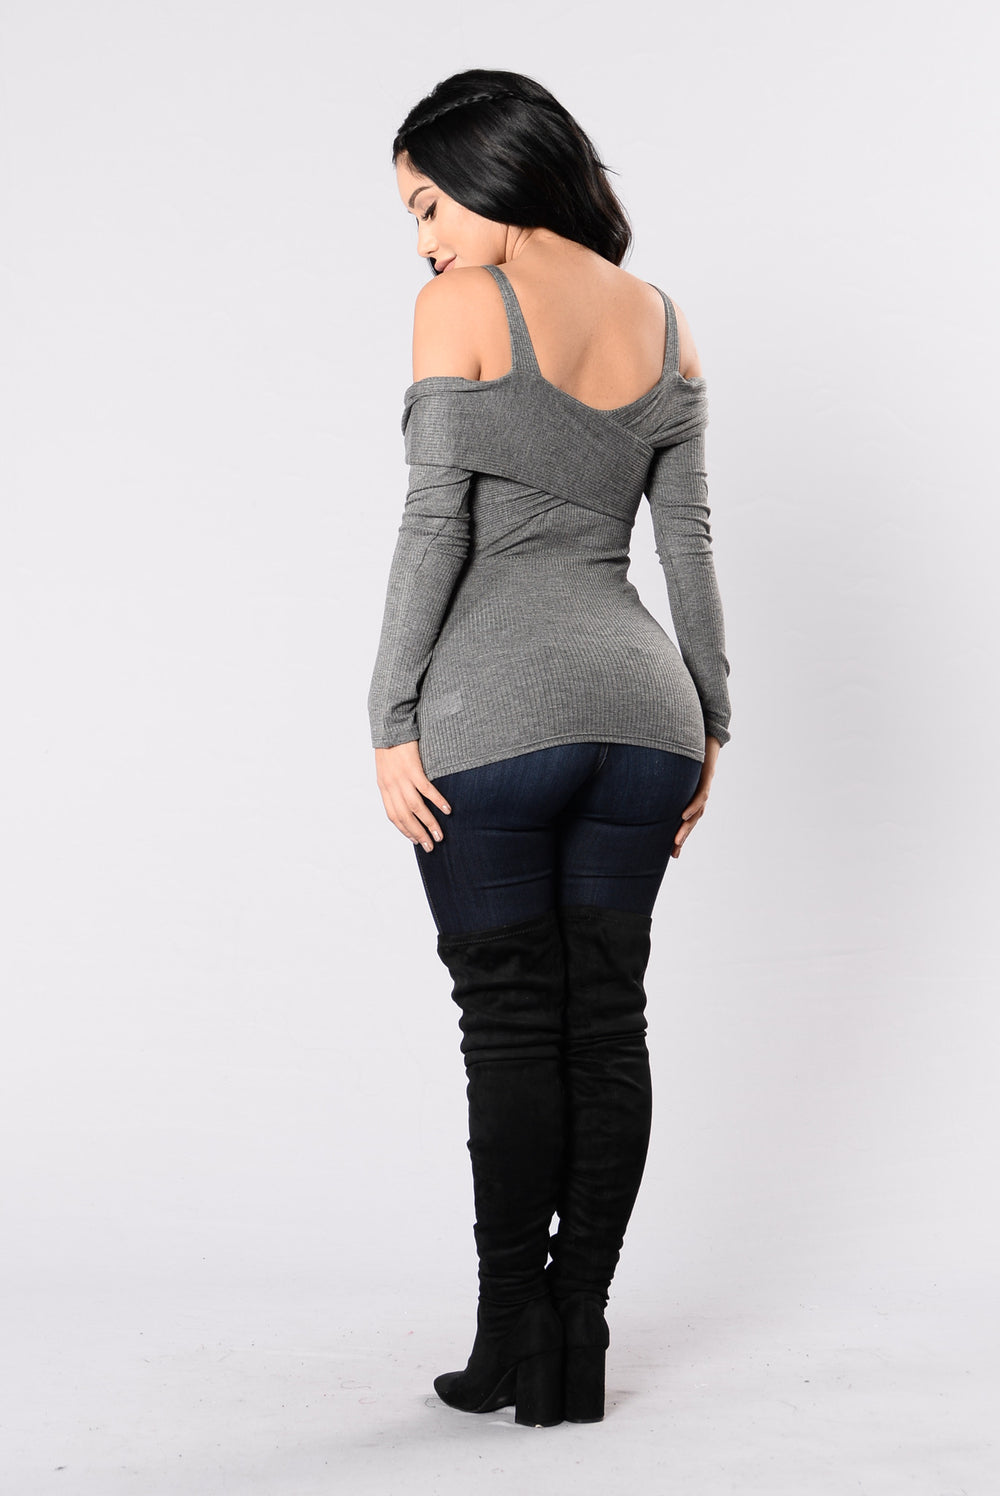 Test Of Time Top - Heather Grey